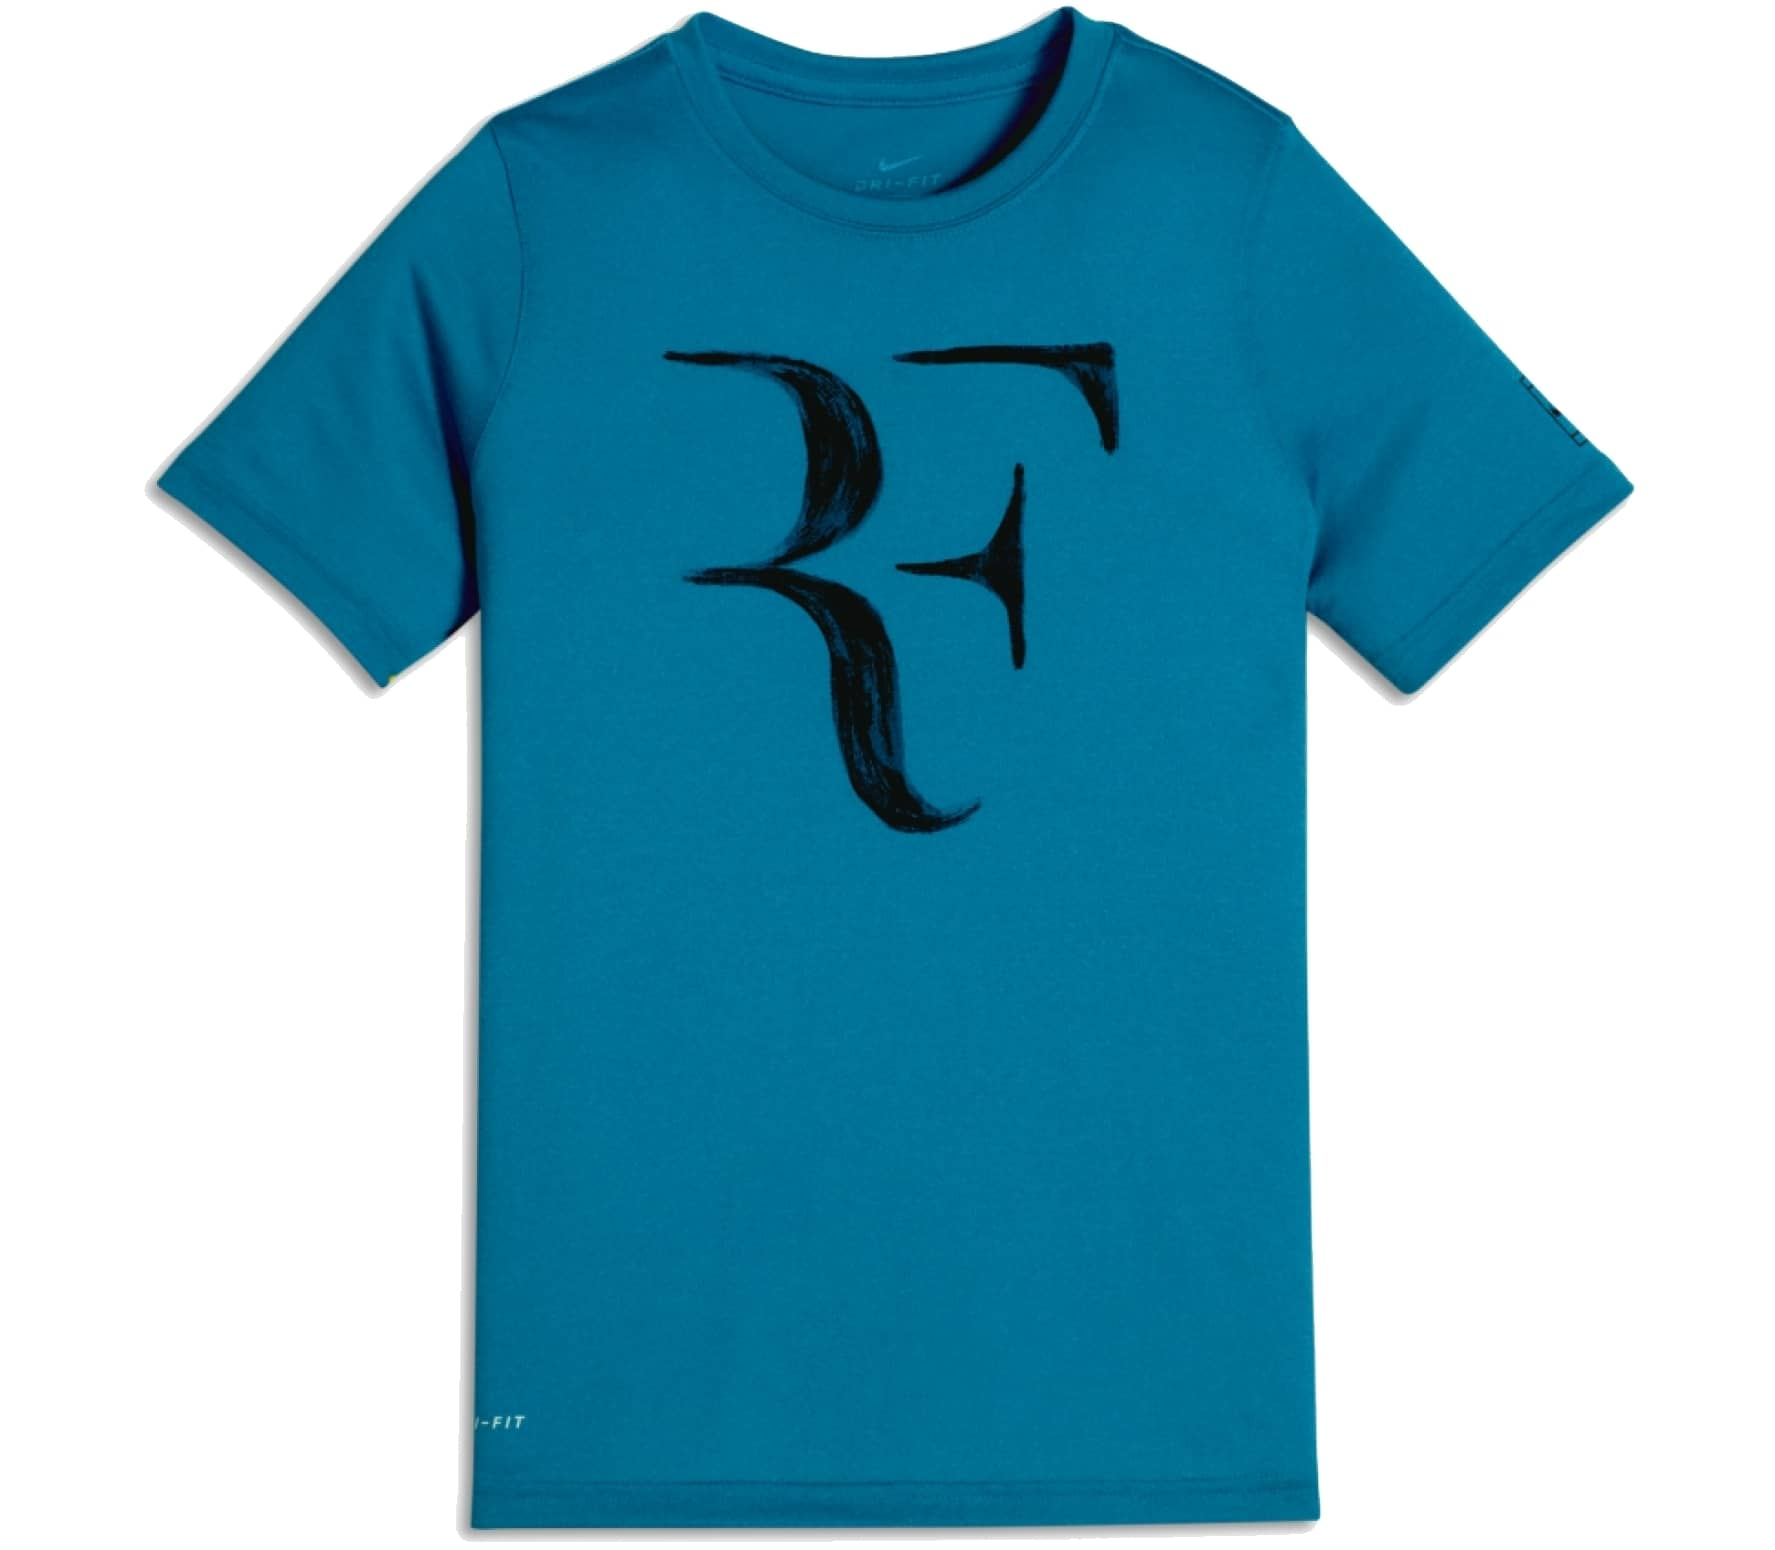 cc78f4d7a93 Nike - Court Dry RF Children tennis top (blue) - buy it at the ...